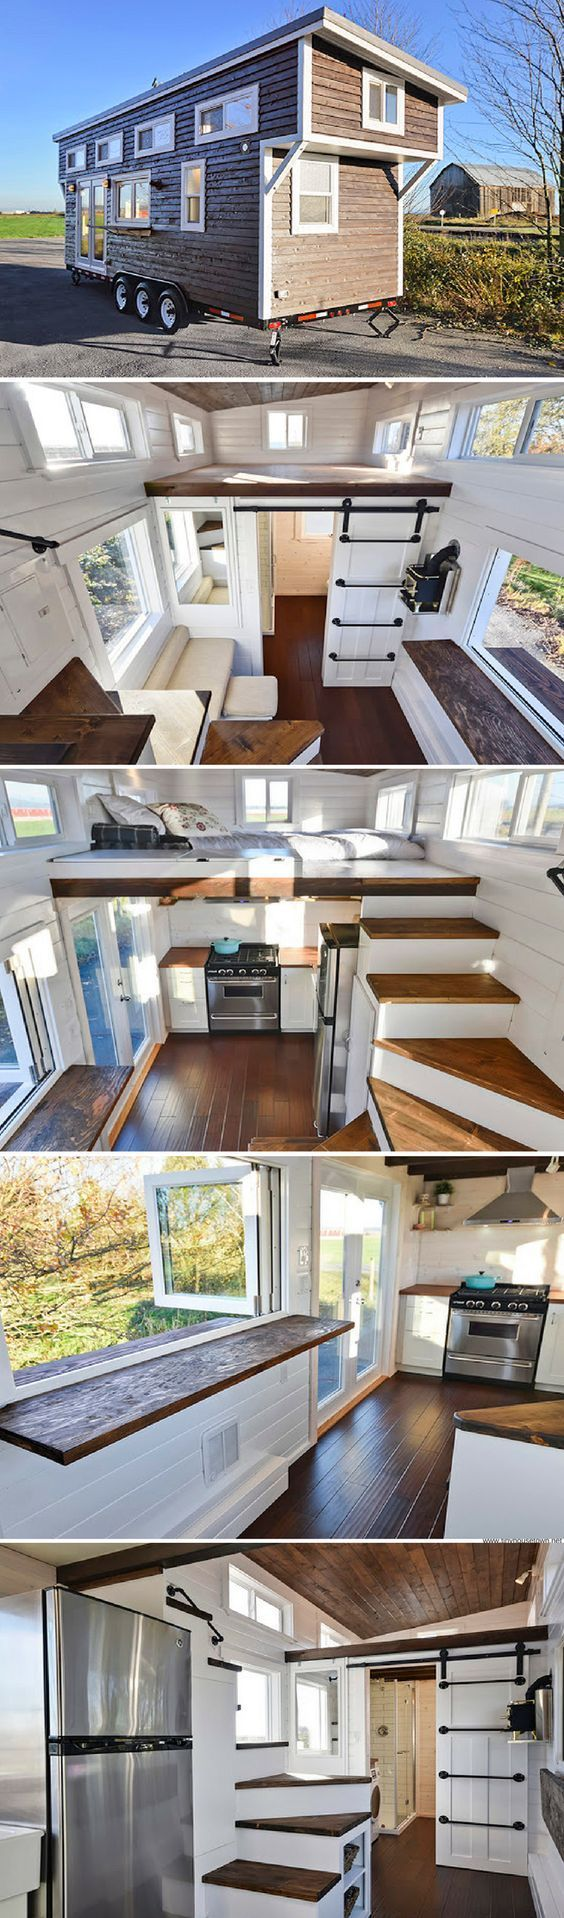 Phenomenal 25 Best Tiny Houses 2017 https://www.fancydecors.co/2018/01/26/25-best-tiny-houses-2017/ The colder the house is, consequently, the longer your furnace will run to accomplish the temperature you want